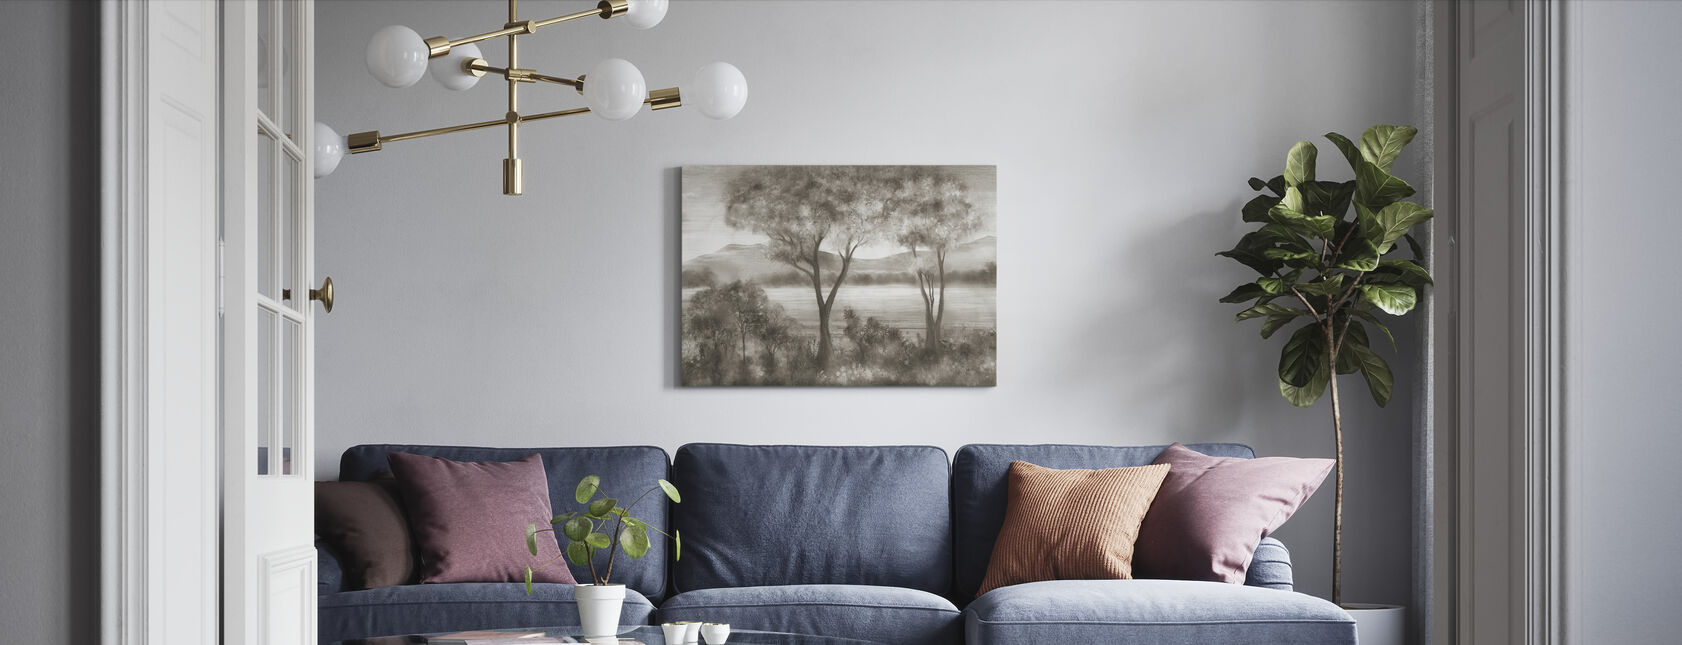 Lay of the Land - Canvas print - Living Room